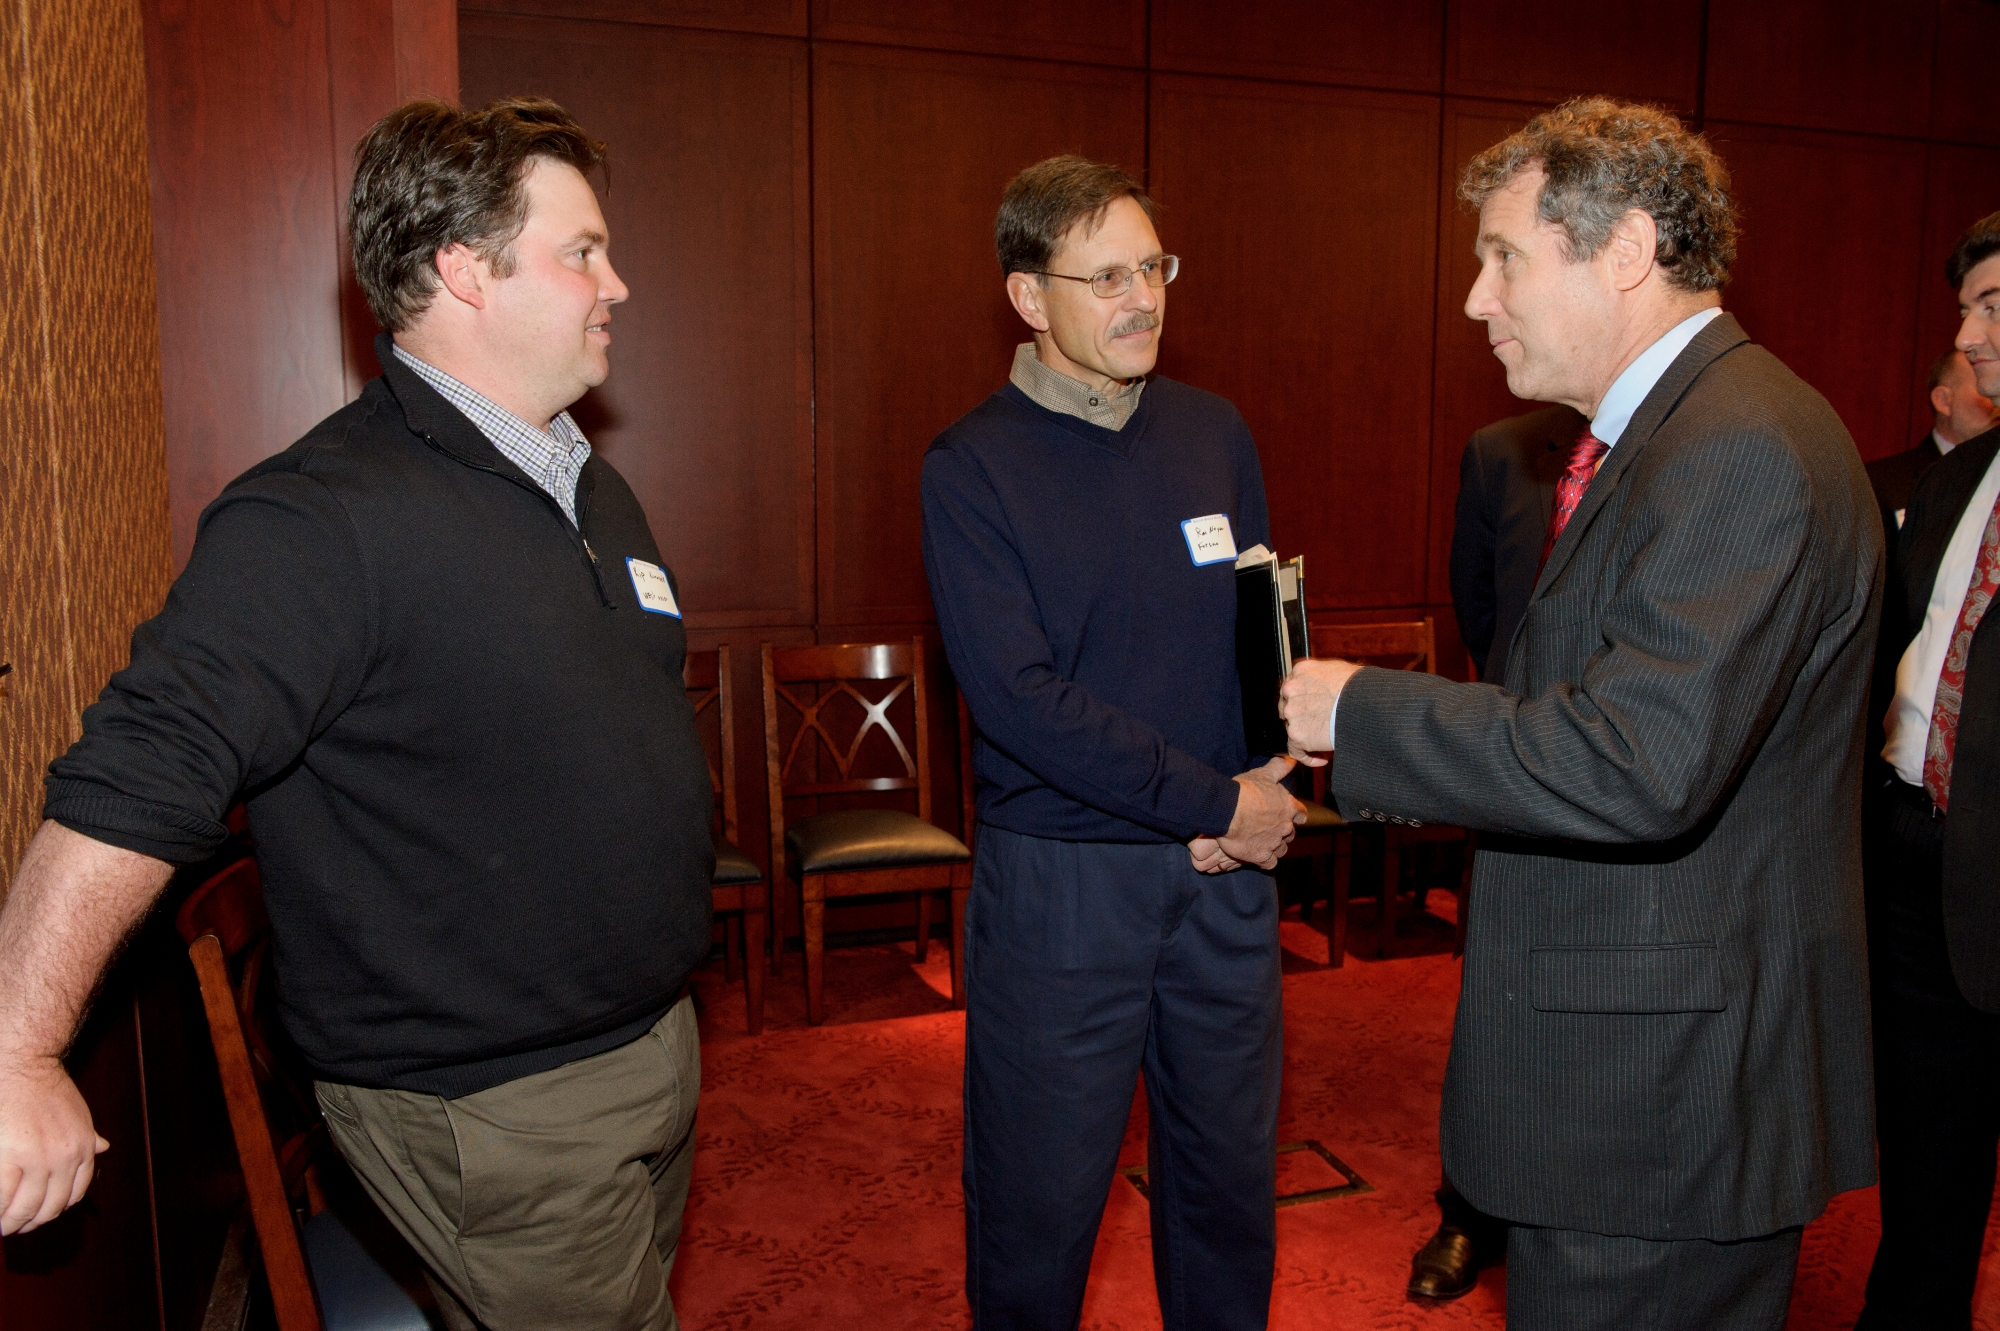 OEFFA members Ron Meyer and Kip Kummerle speaking with Senator Sherrod Brown